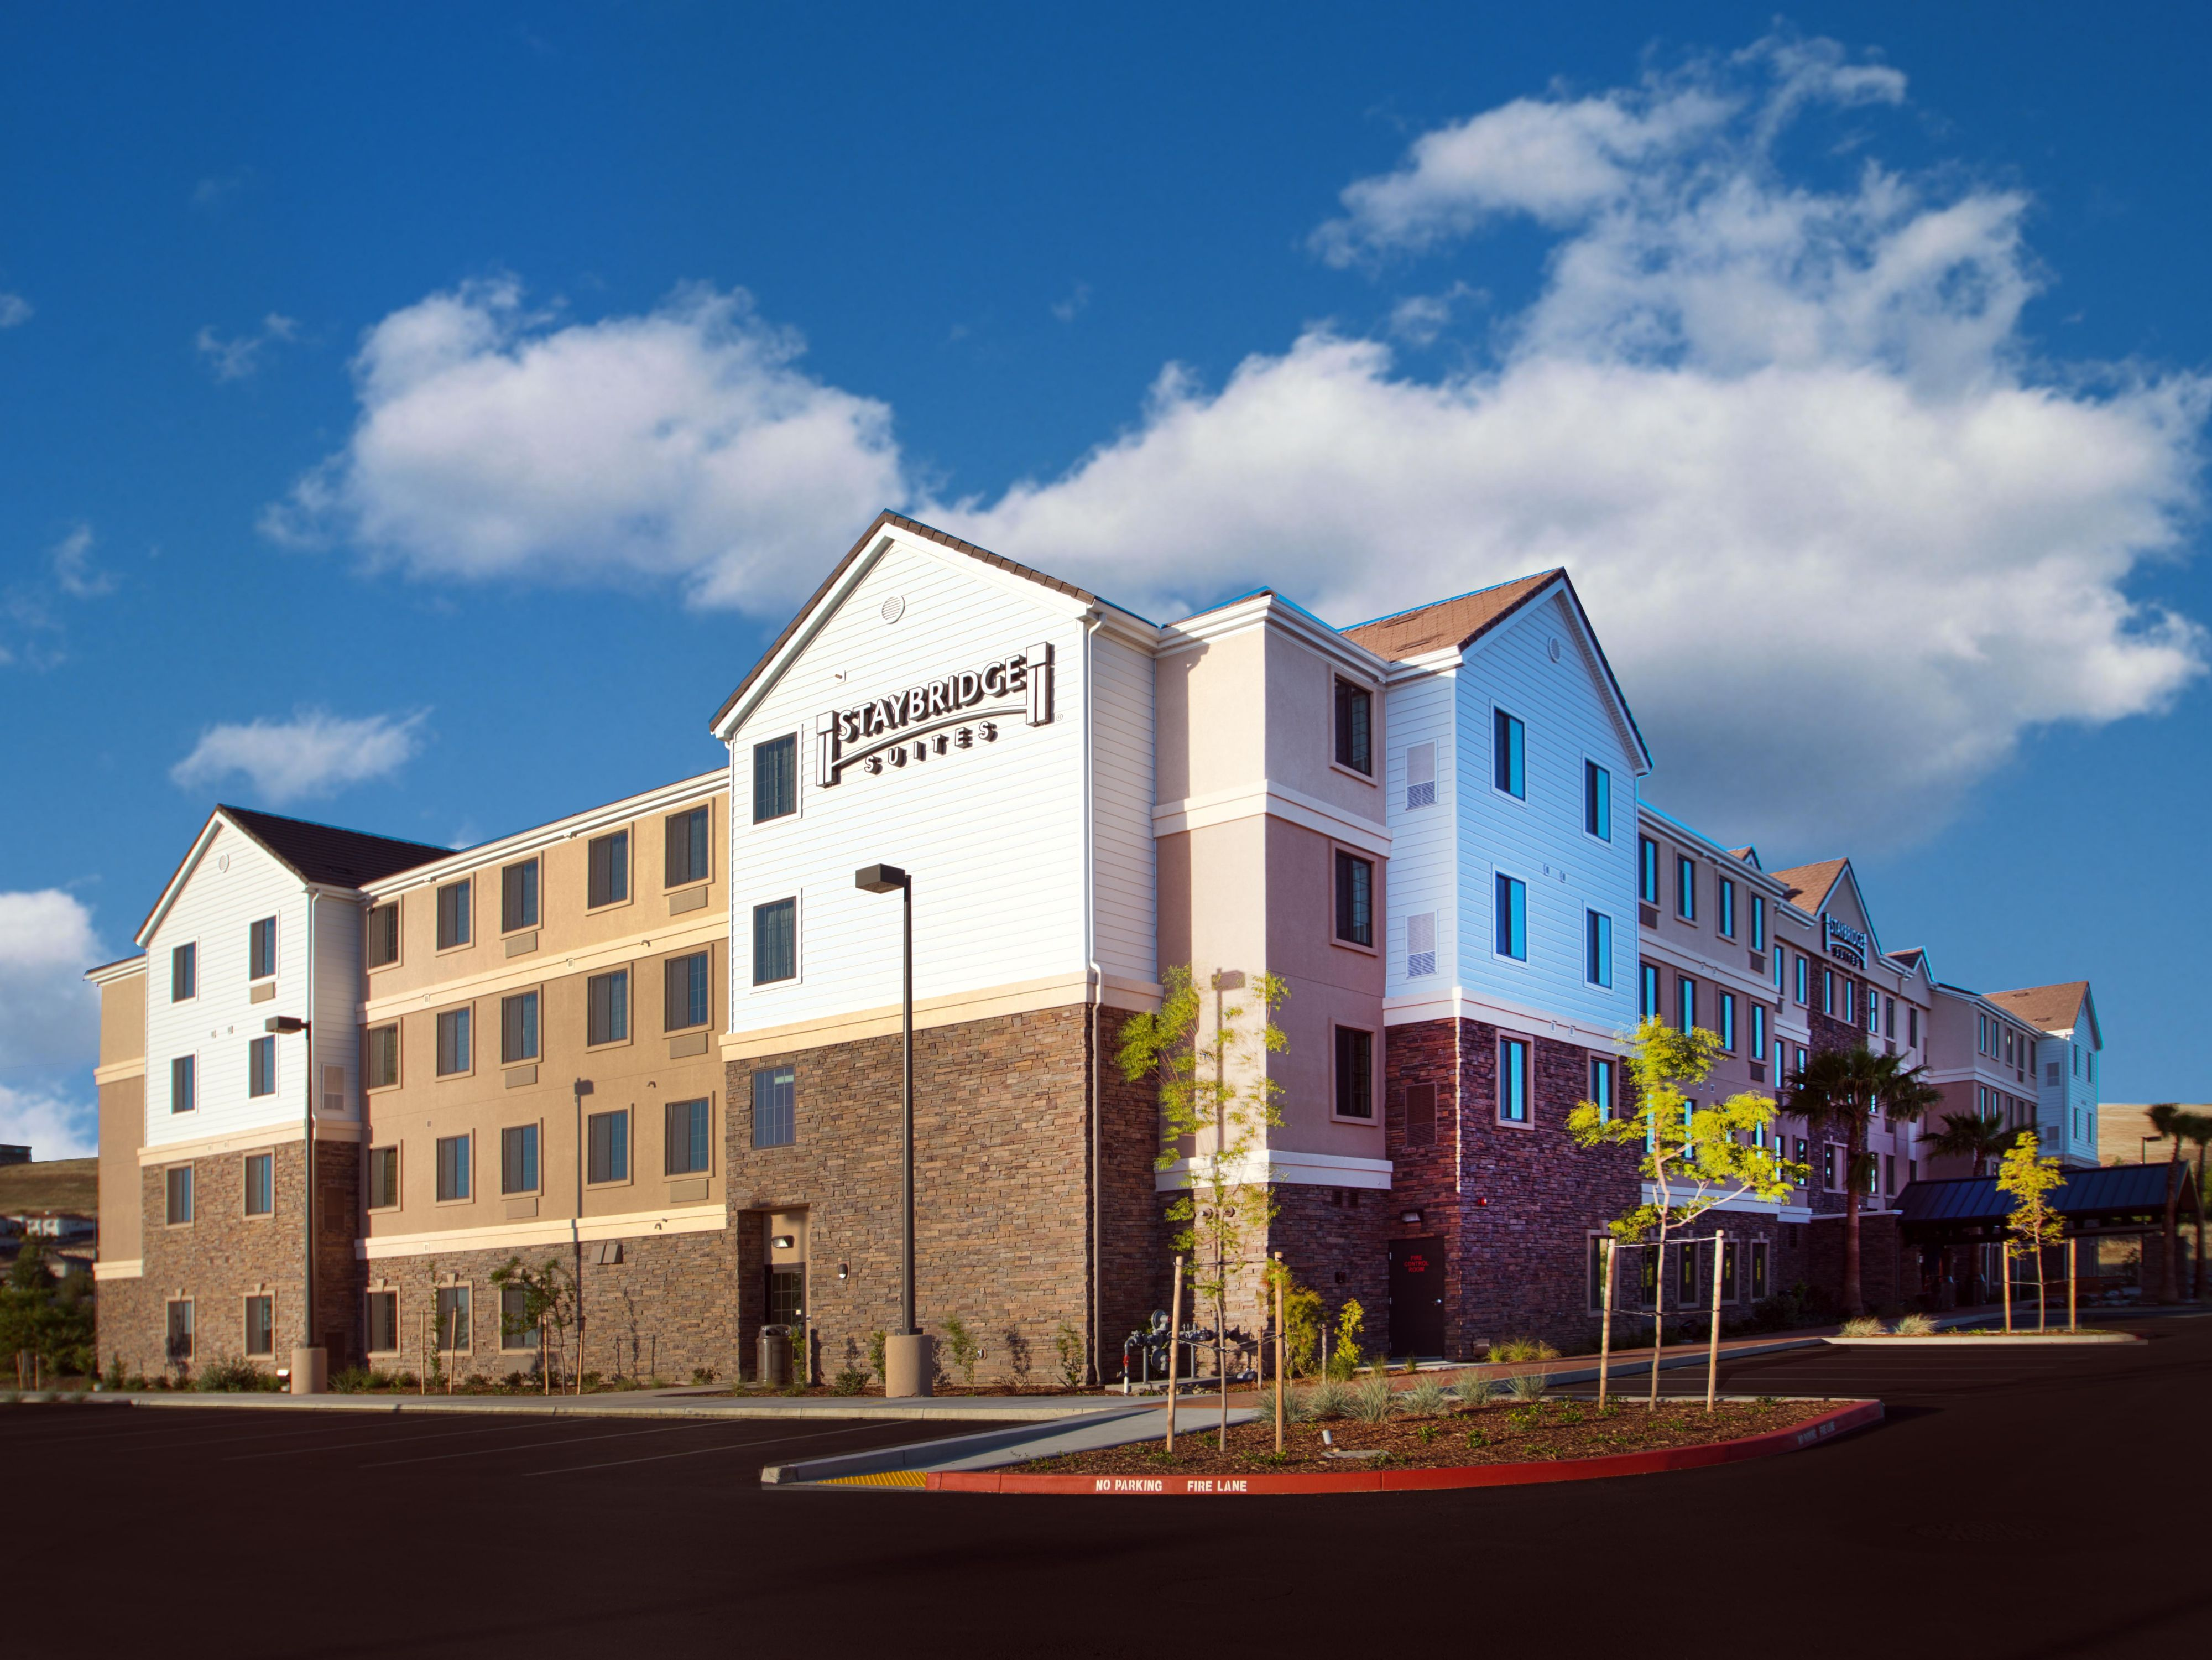 Staybridge Suites Sacramento   Folsom   Extended Stay Hotel In Folsom,  United States With Full Kitchen